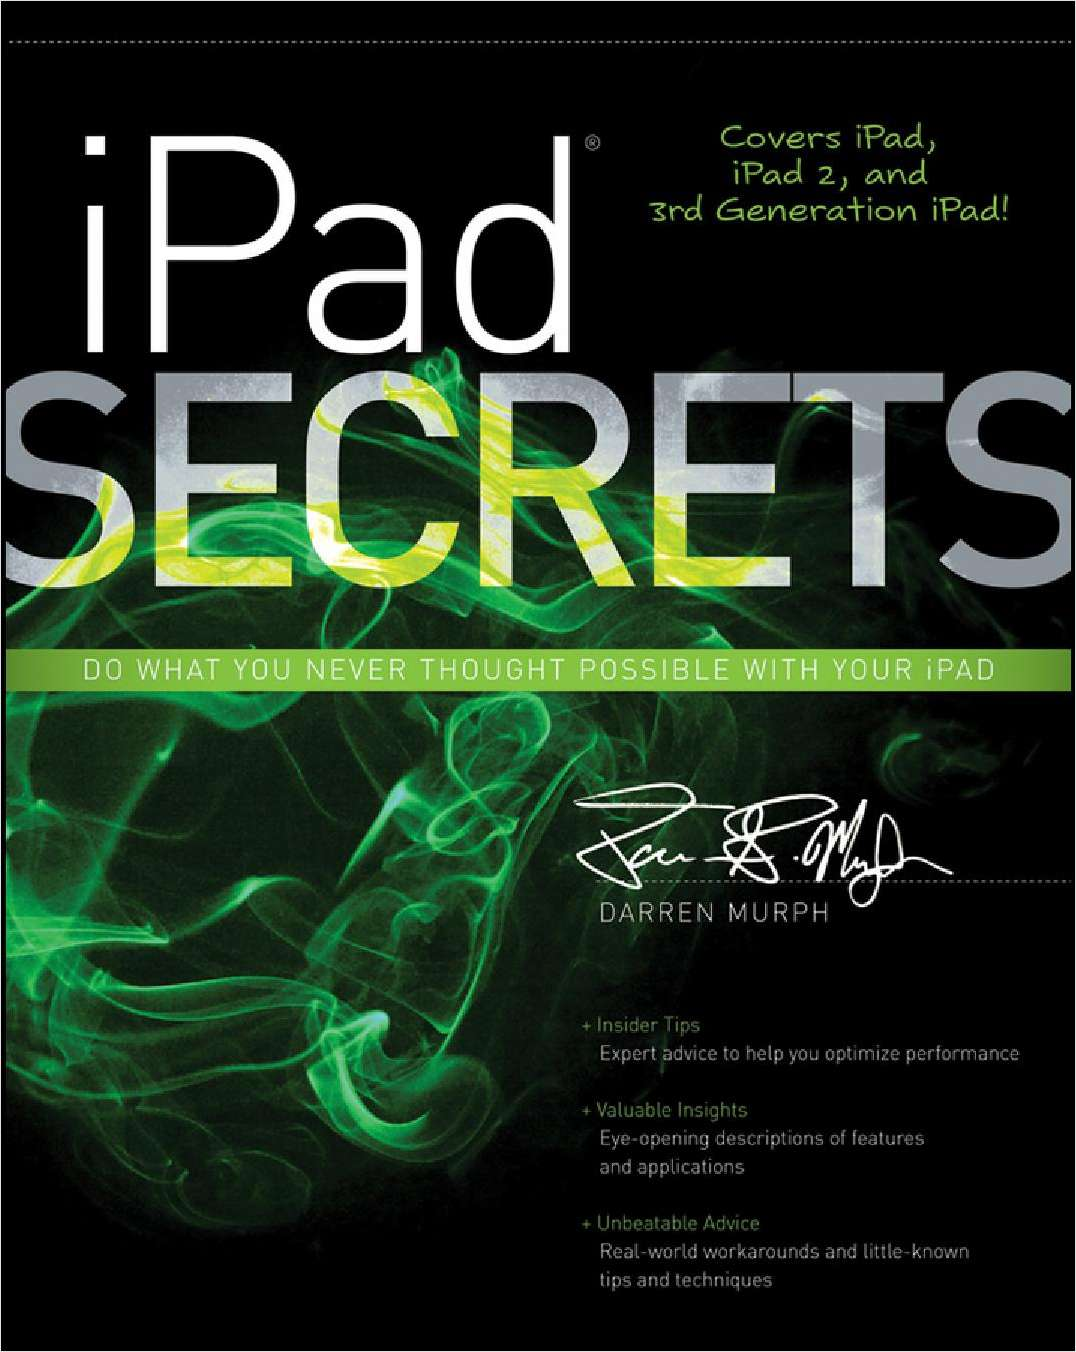 iPad Secrets (Covers iPad, iPad 2, and 3rd Generation iPad)--Free Sample Chapter